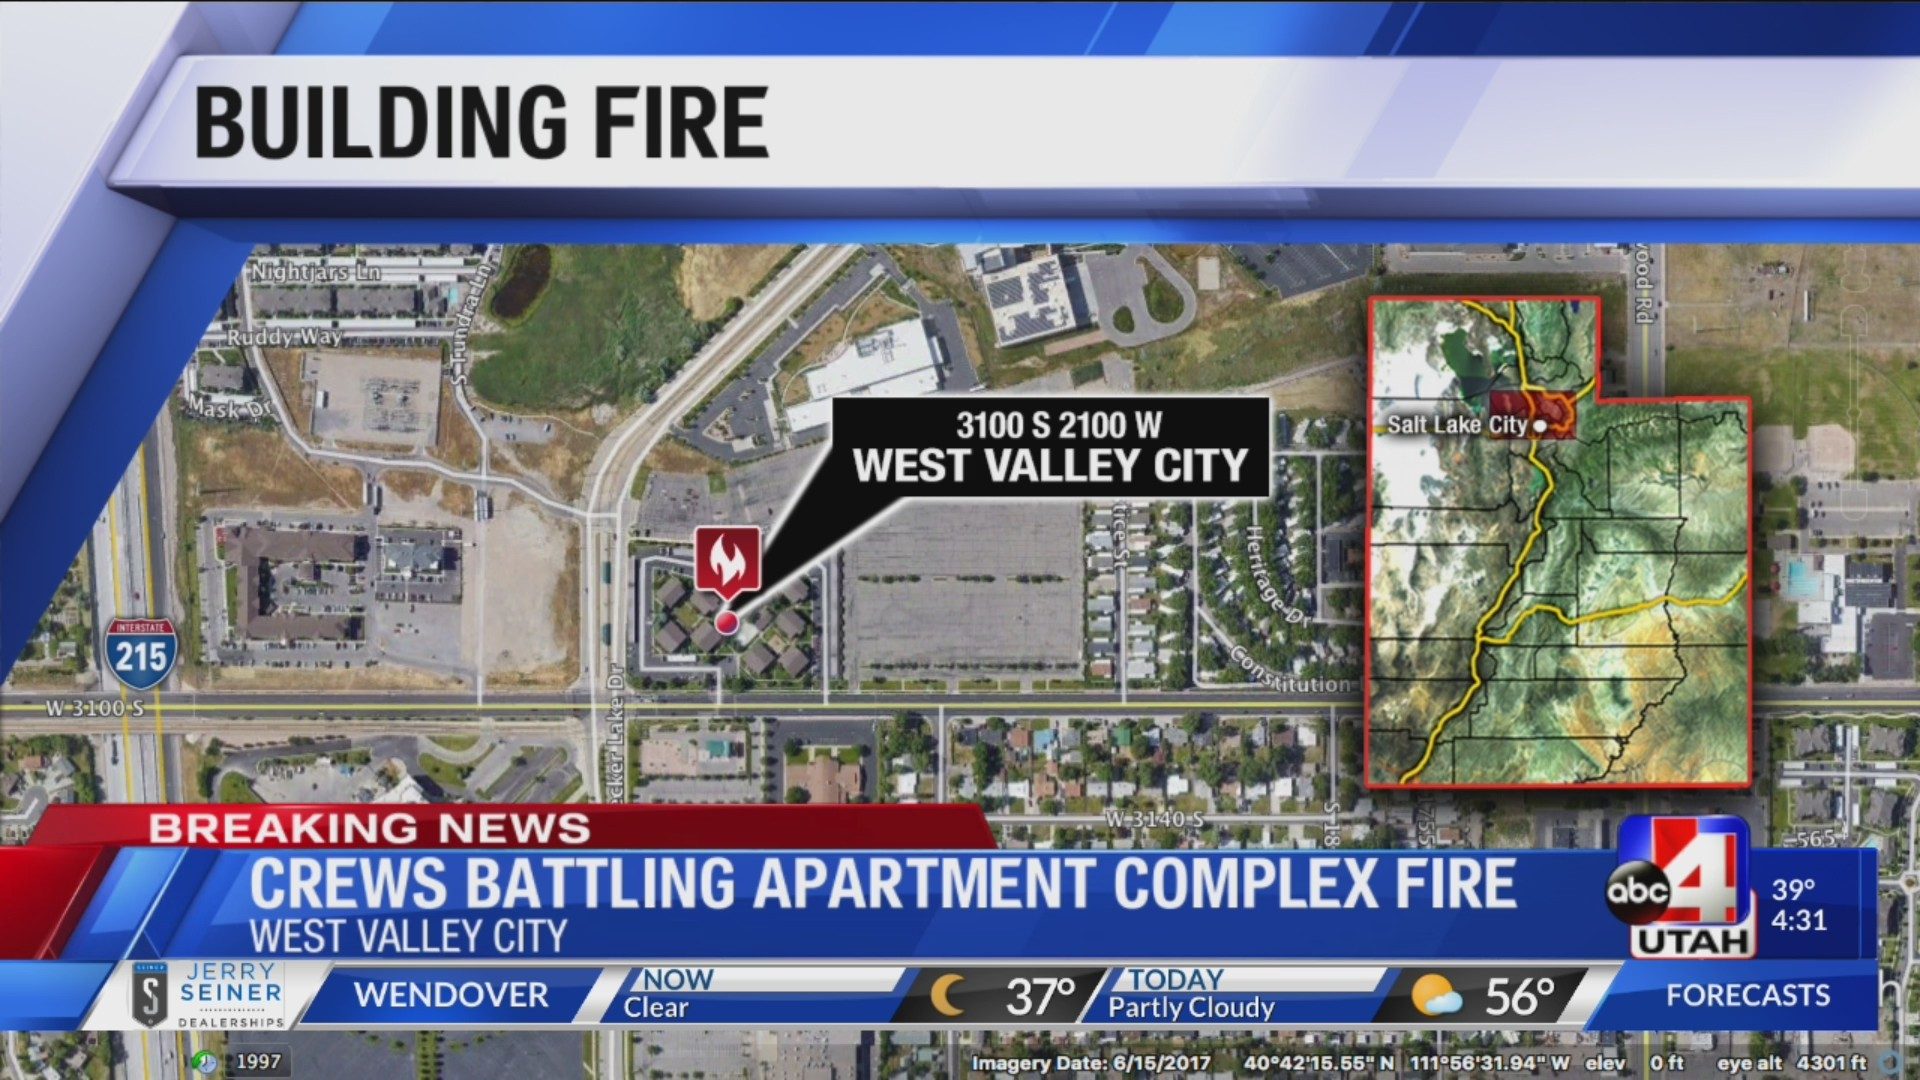 WEST VALLEY BUILDING FIRE